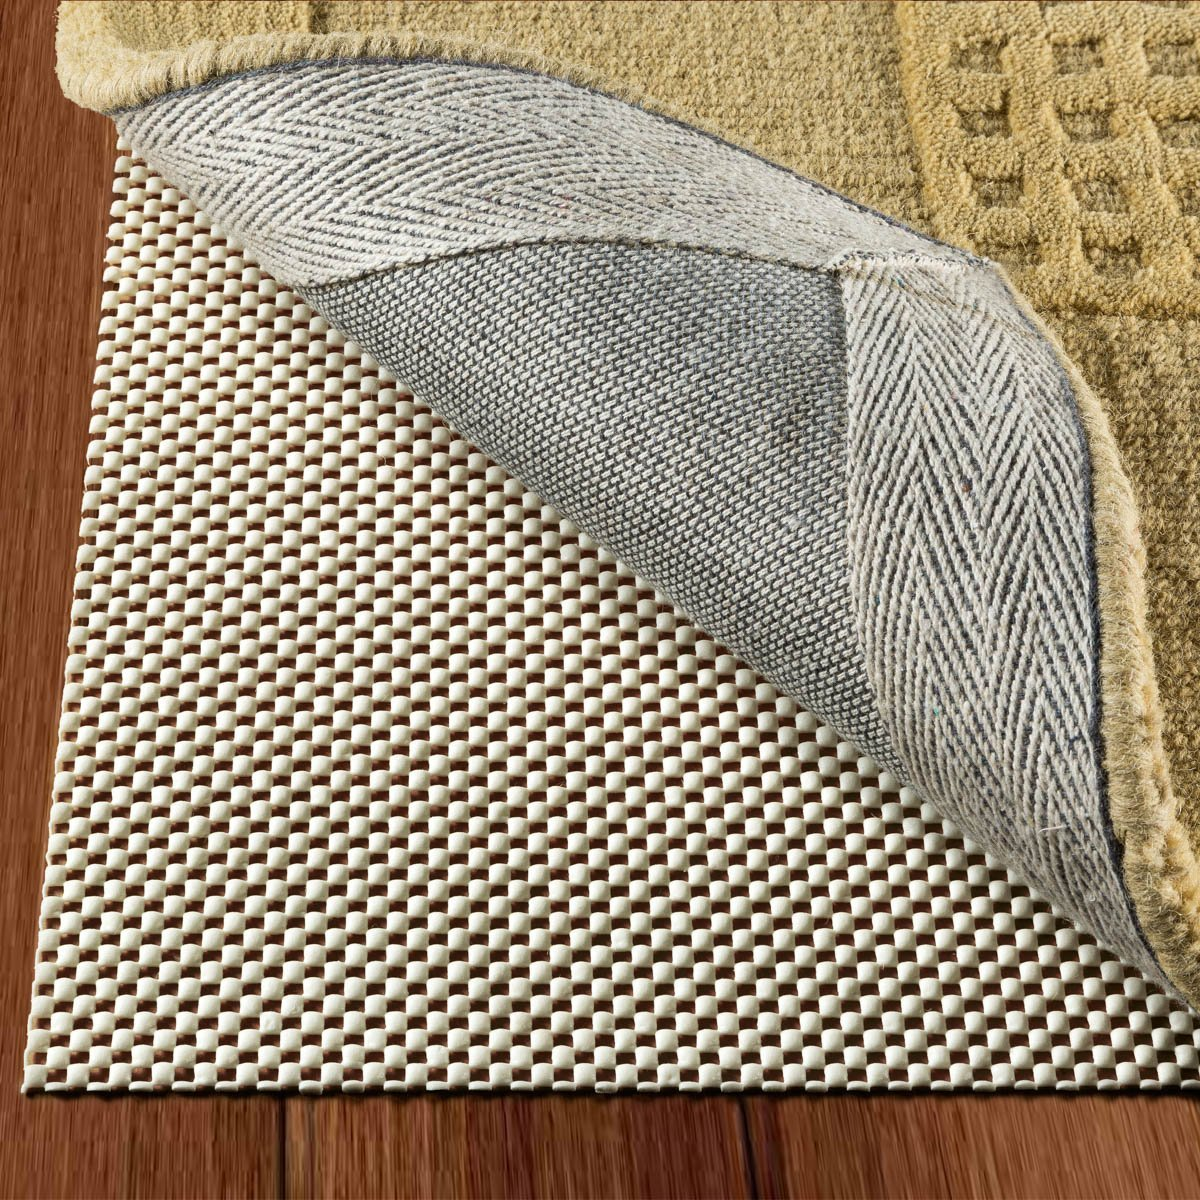 Outdoor Area Rug Pad: Non Slip Area Rug Pad Size 3' X 5' Extra Strong Grip